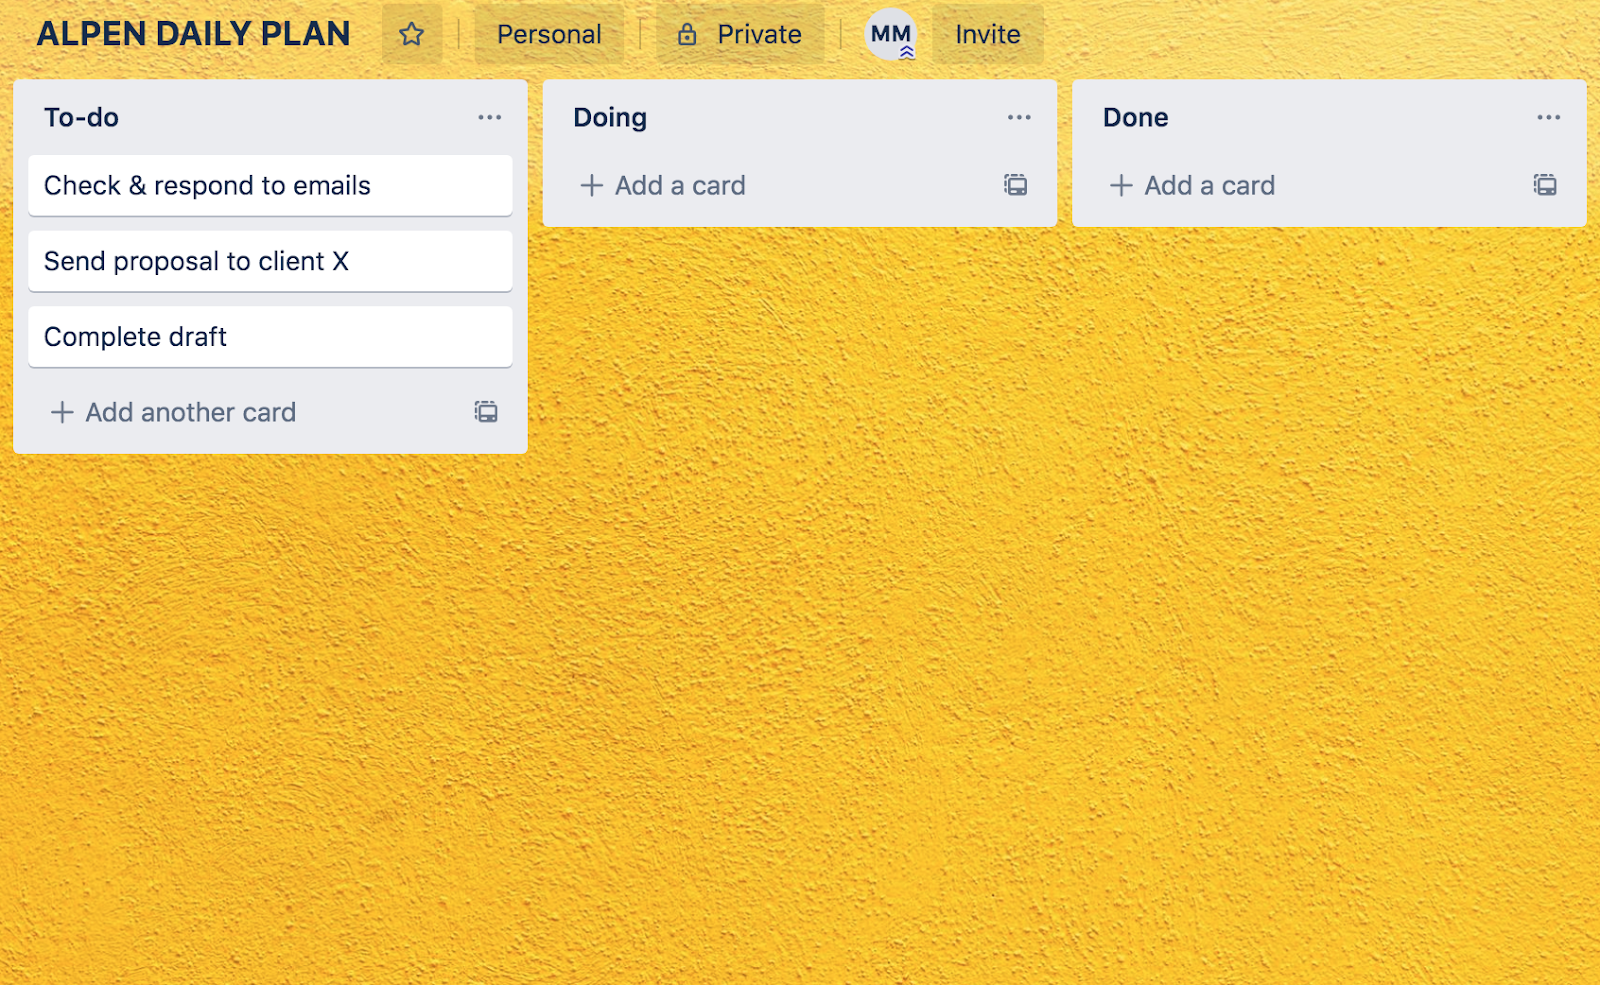 APLEN method in Trello